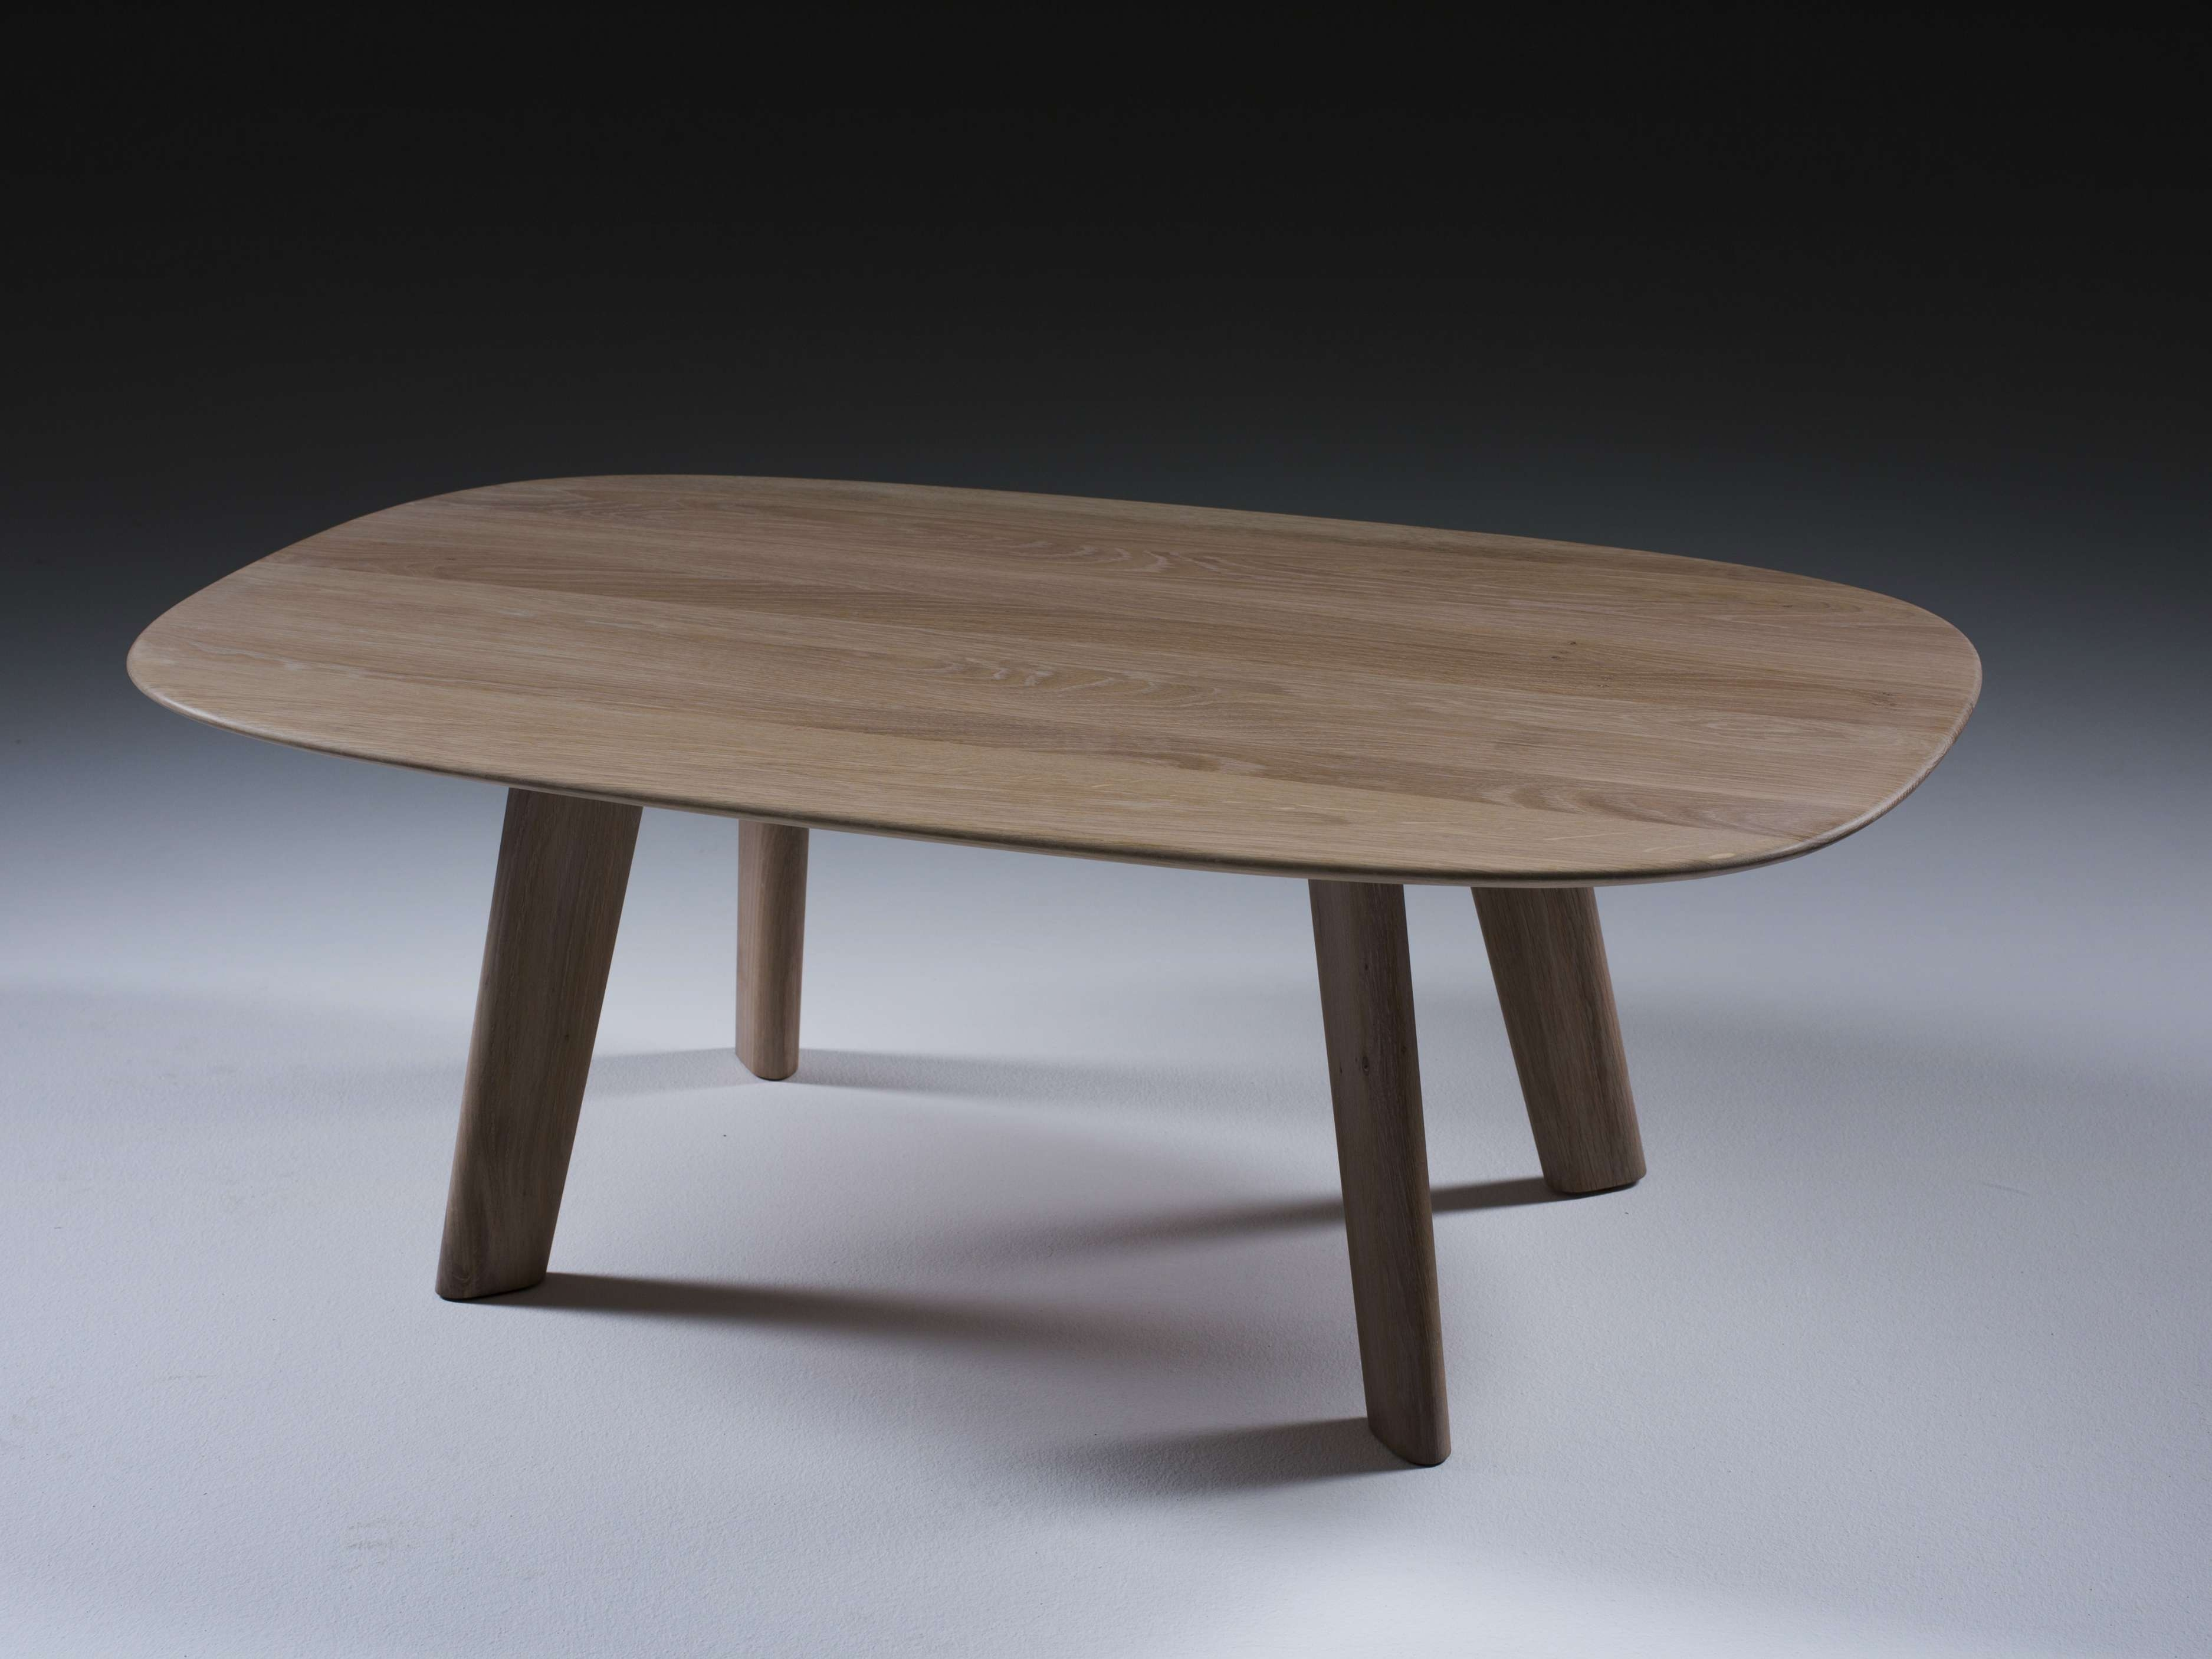 Cherry Wood Oval Coffee Tables Tags : 83 Gleaming Oval Coffee Throughout Popular Oval Wood Coffee Tables (View 2 of 20)